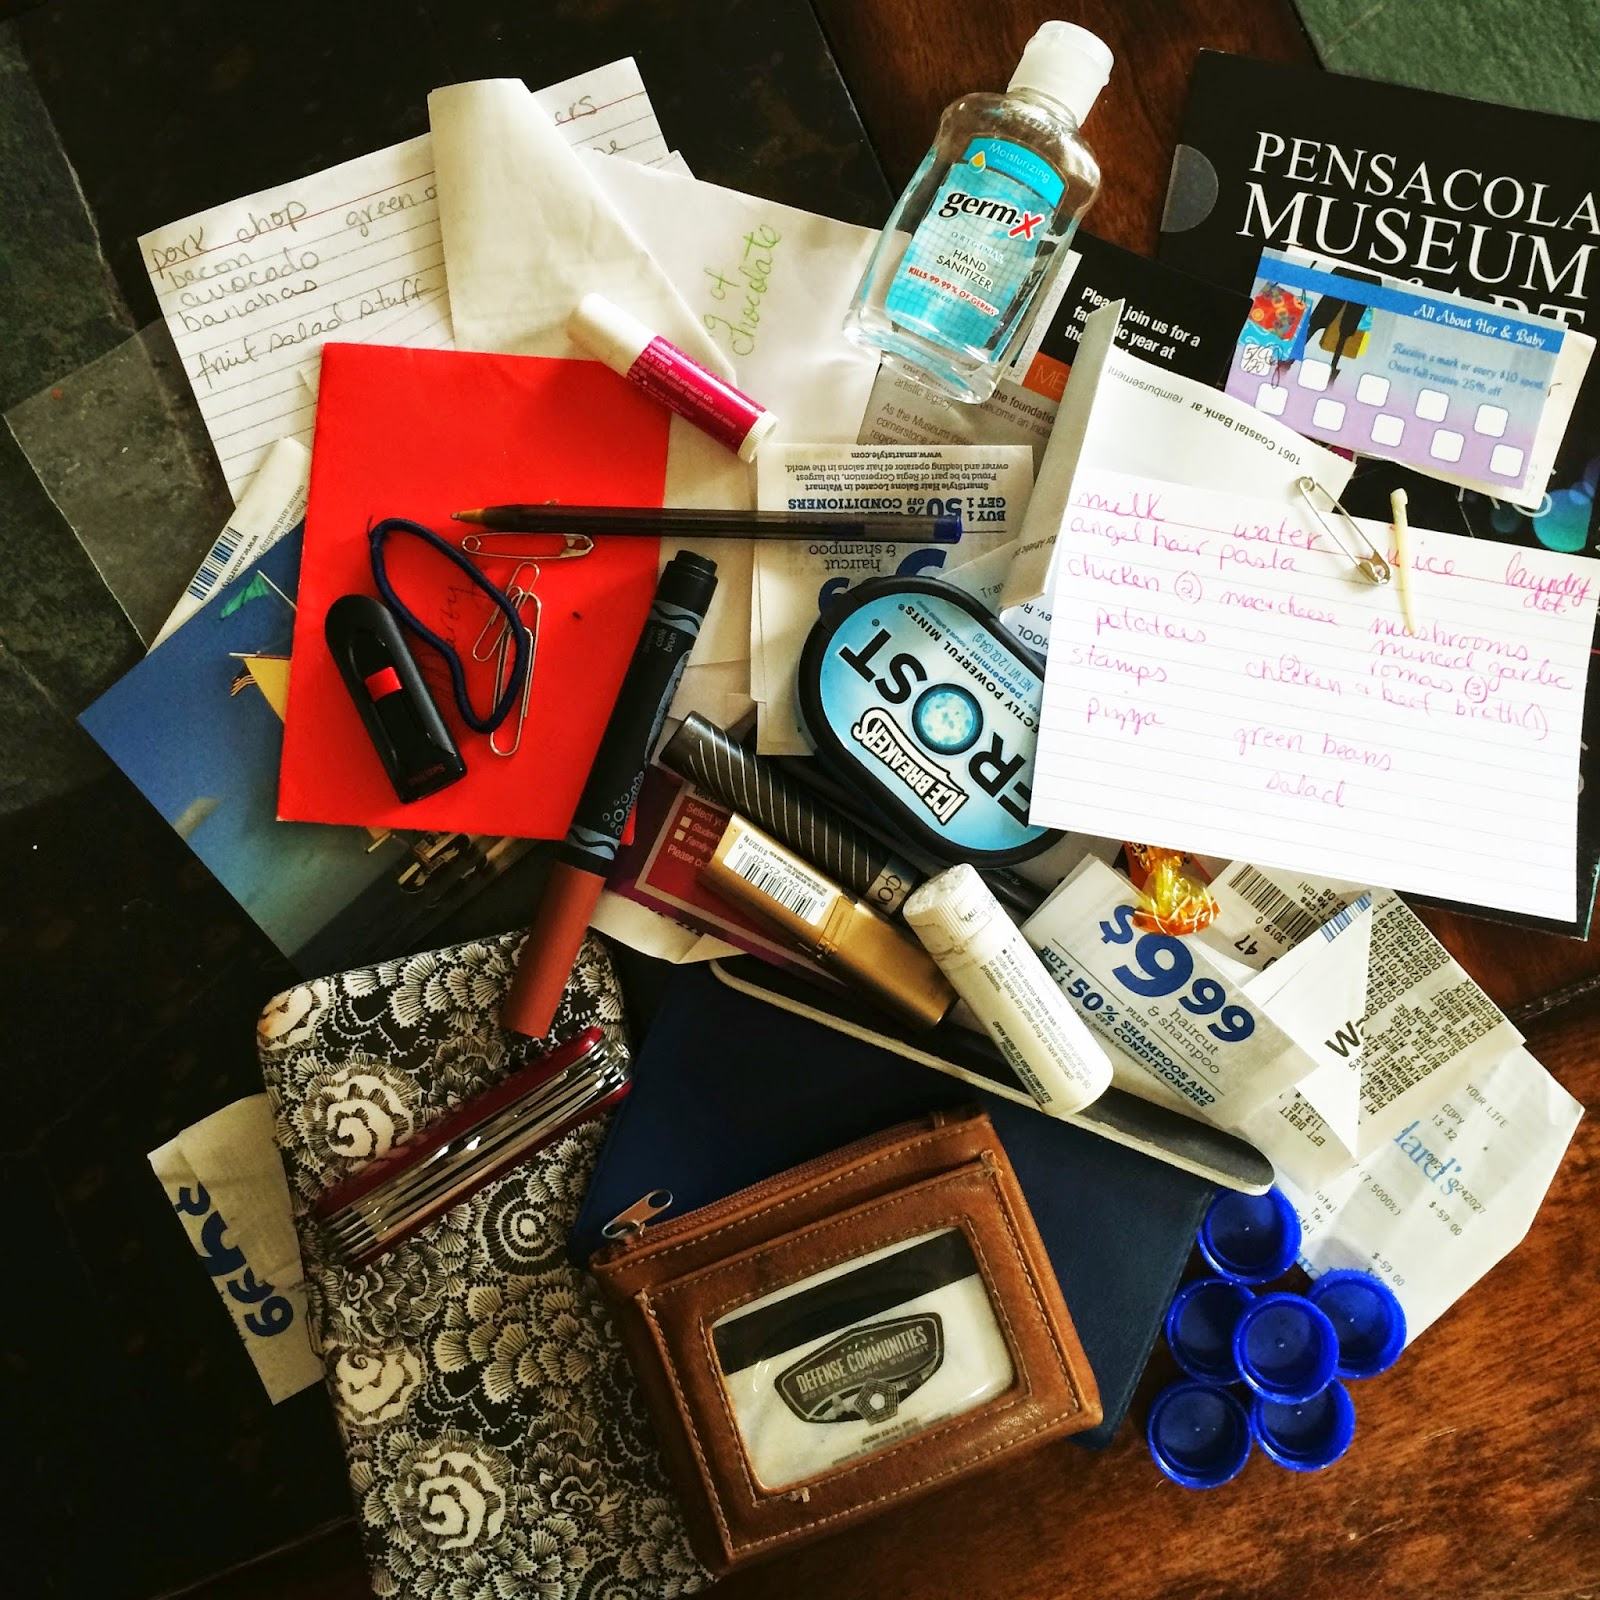 stuff in my purse, trash, receipts